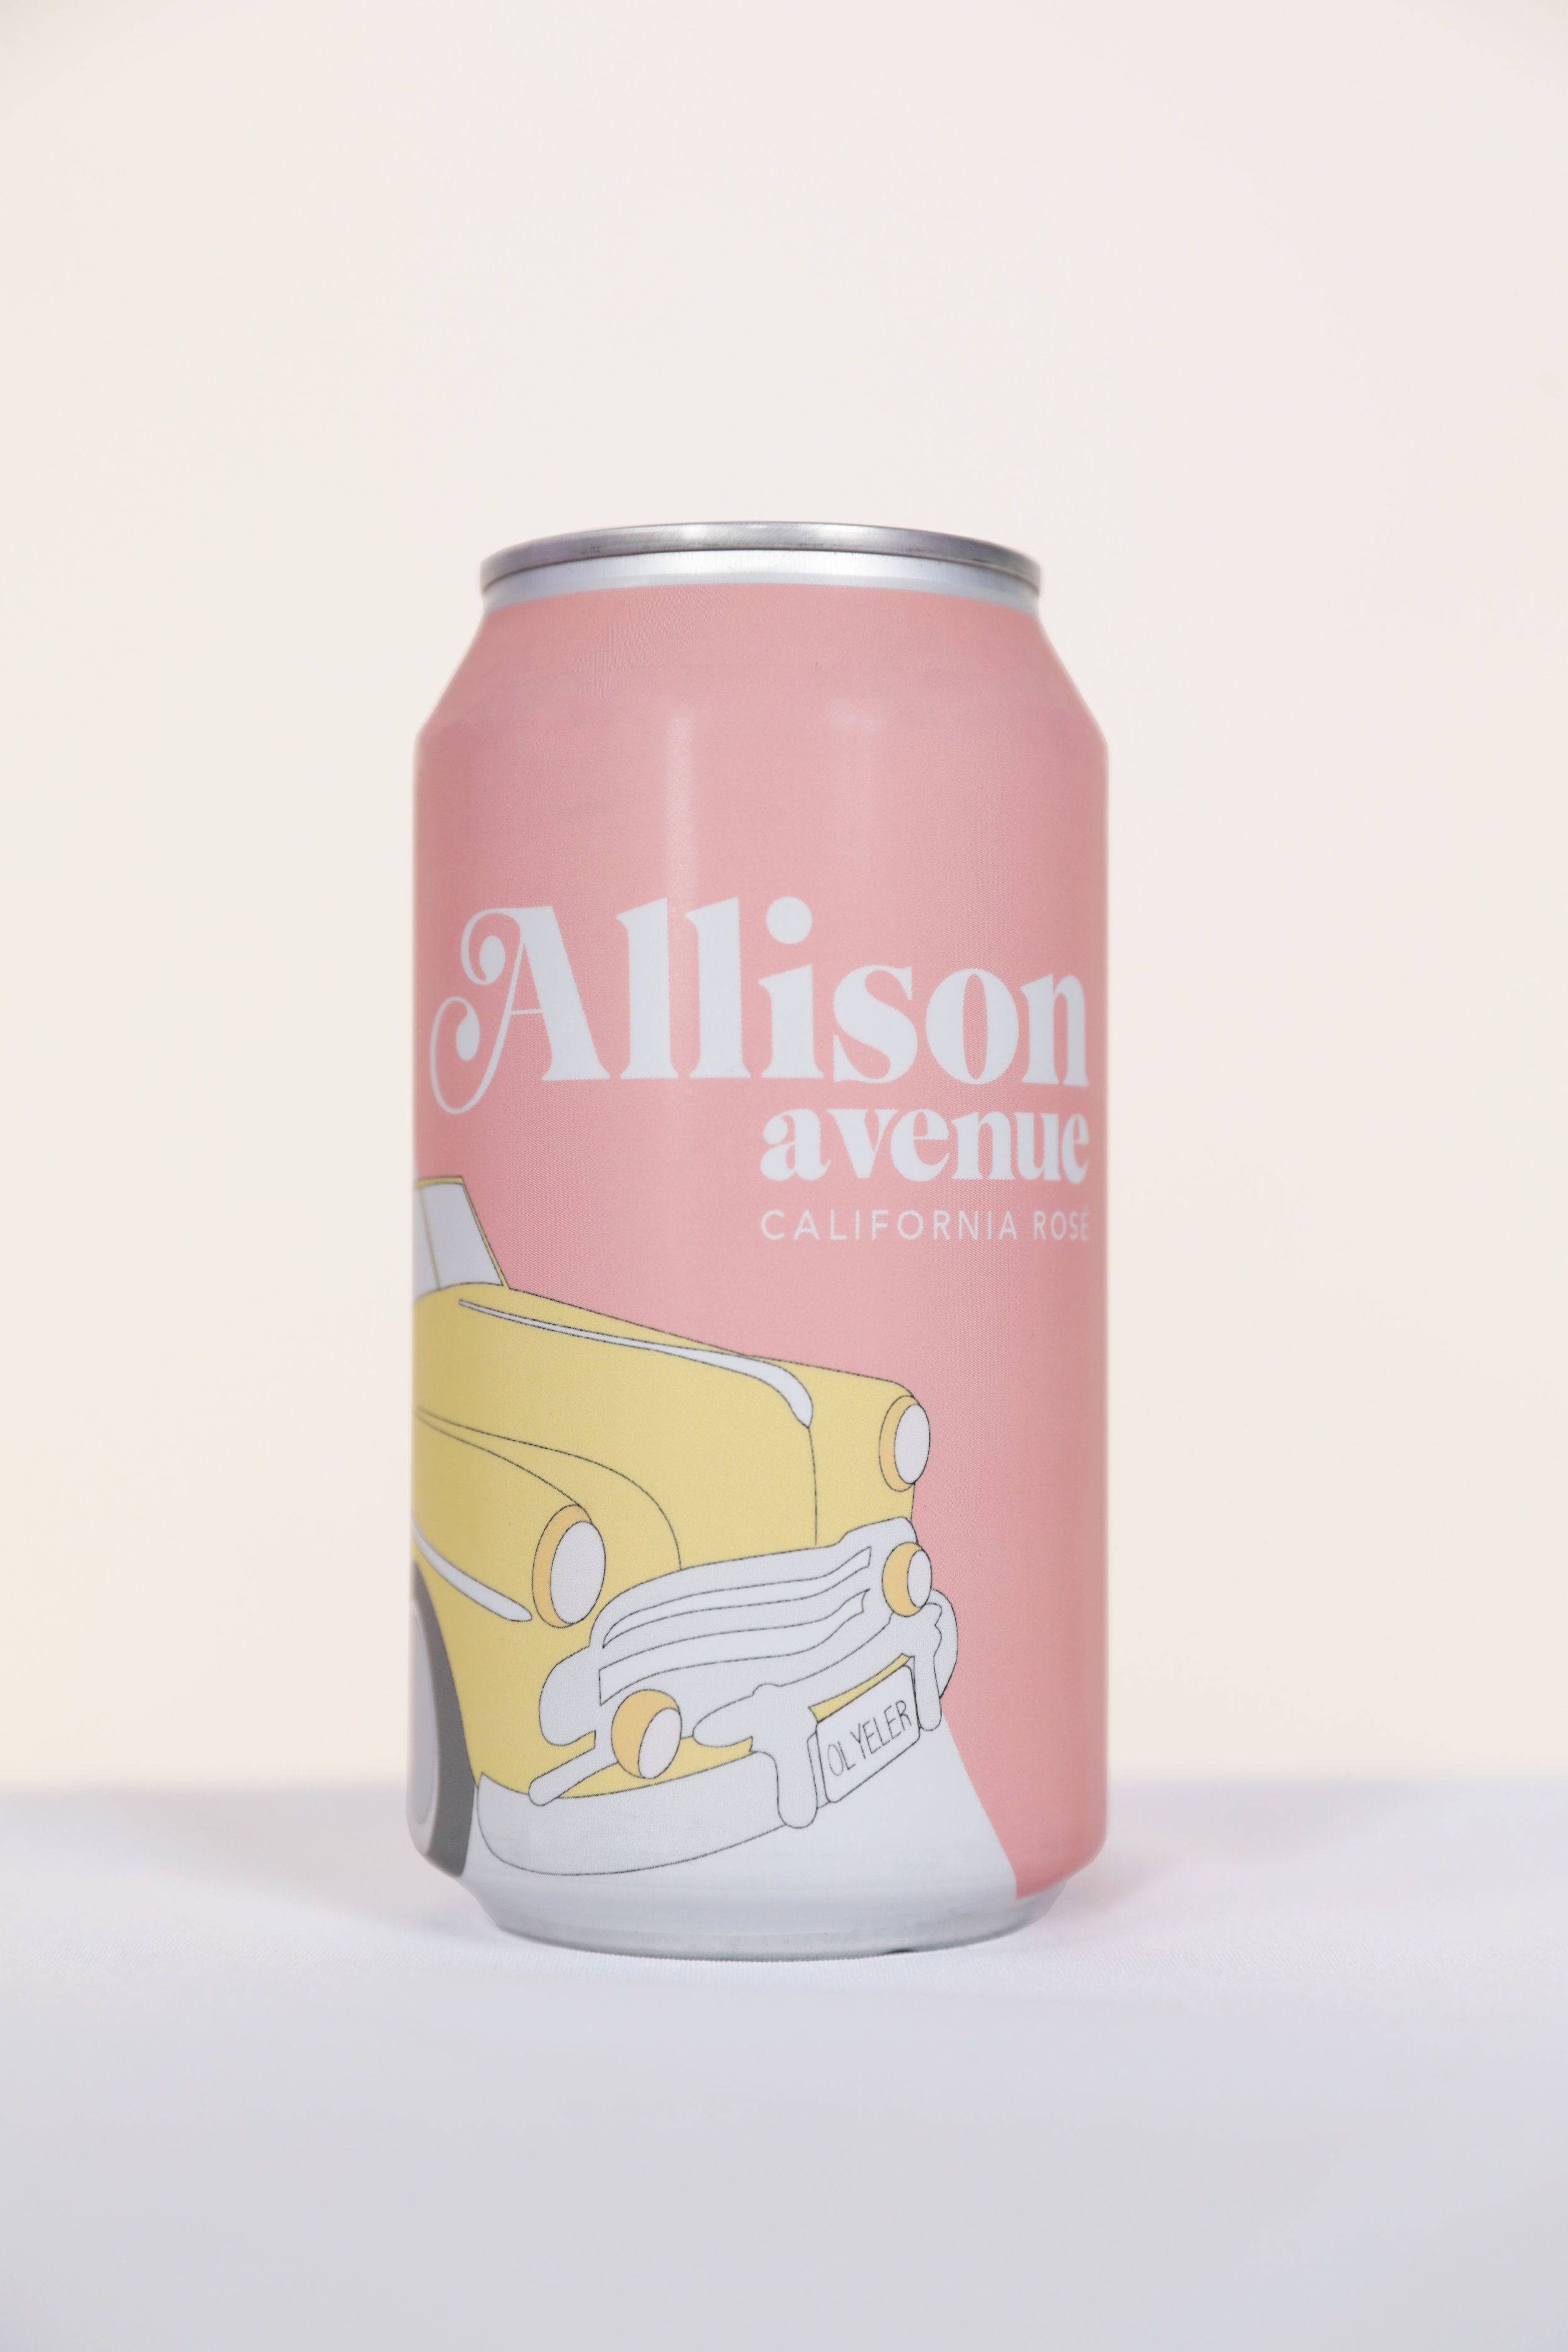 Allison Avenue - Allison Avenue brings you a full-bodied Napa Valley rosé in a can. Made from zinfandel grapes sourced from the Calistoga Appellation's Pocai Vineyard, Allison Avenue favors citrus and pomegranate notes over berry while adding a hint of tartness. Winemaker Bruce Devlin says that this rosé